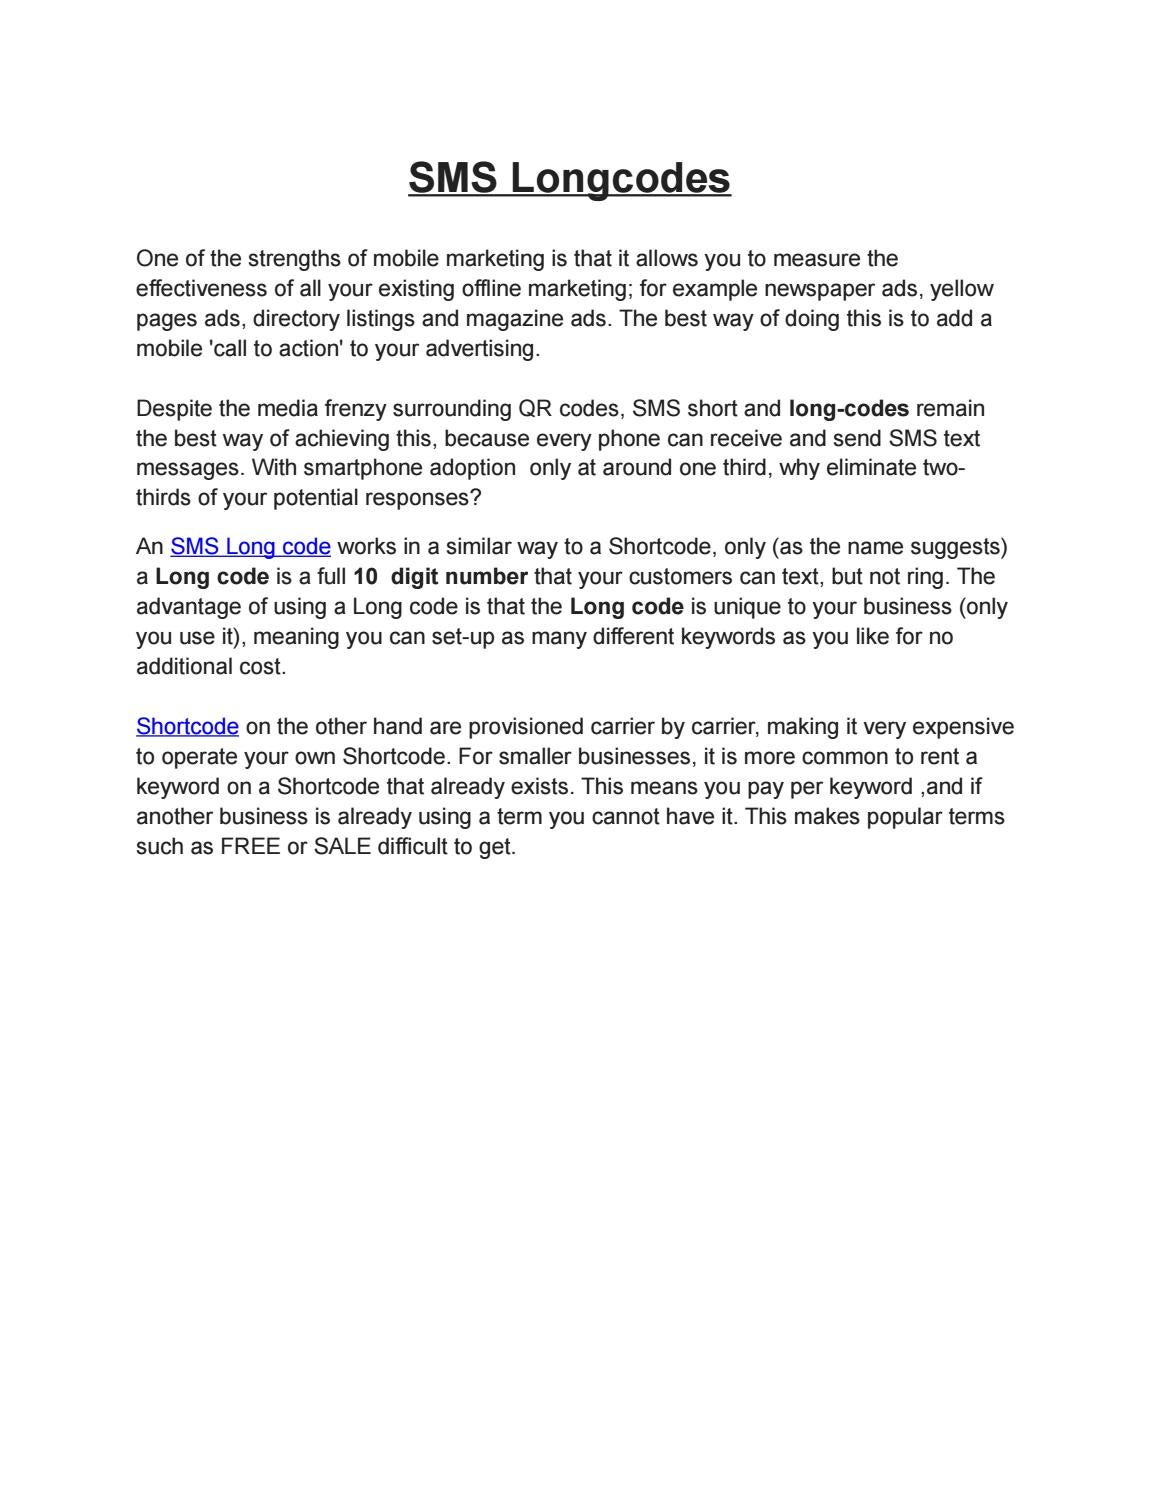 Sms longcodes by sonimittal - issuu